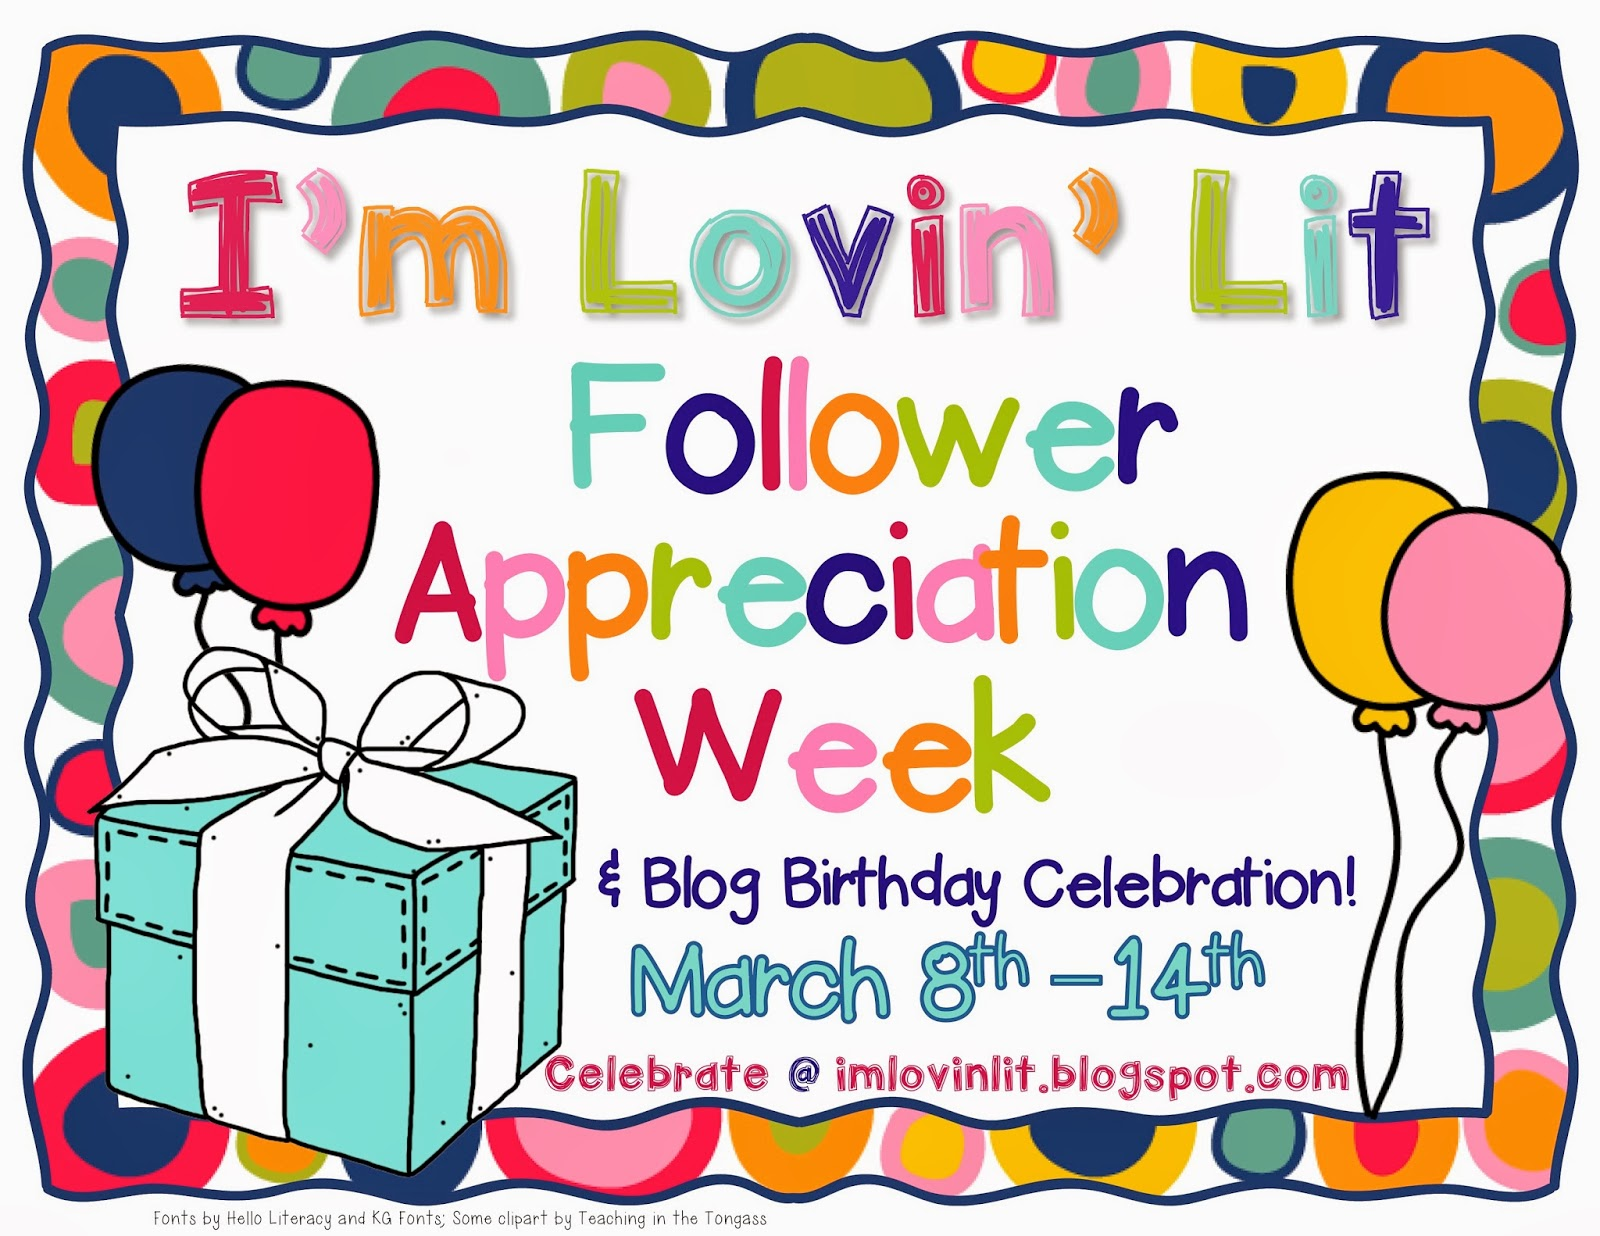 Day 3: Follower Appreciation Week